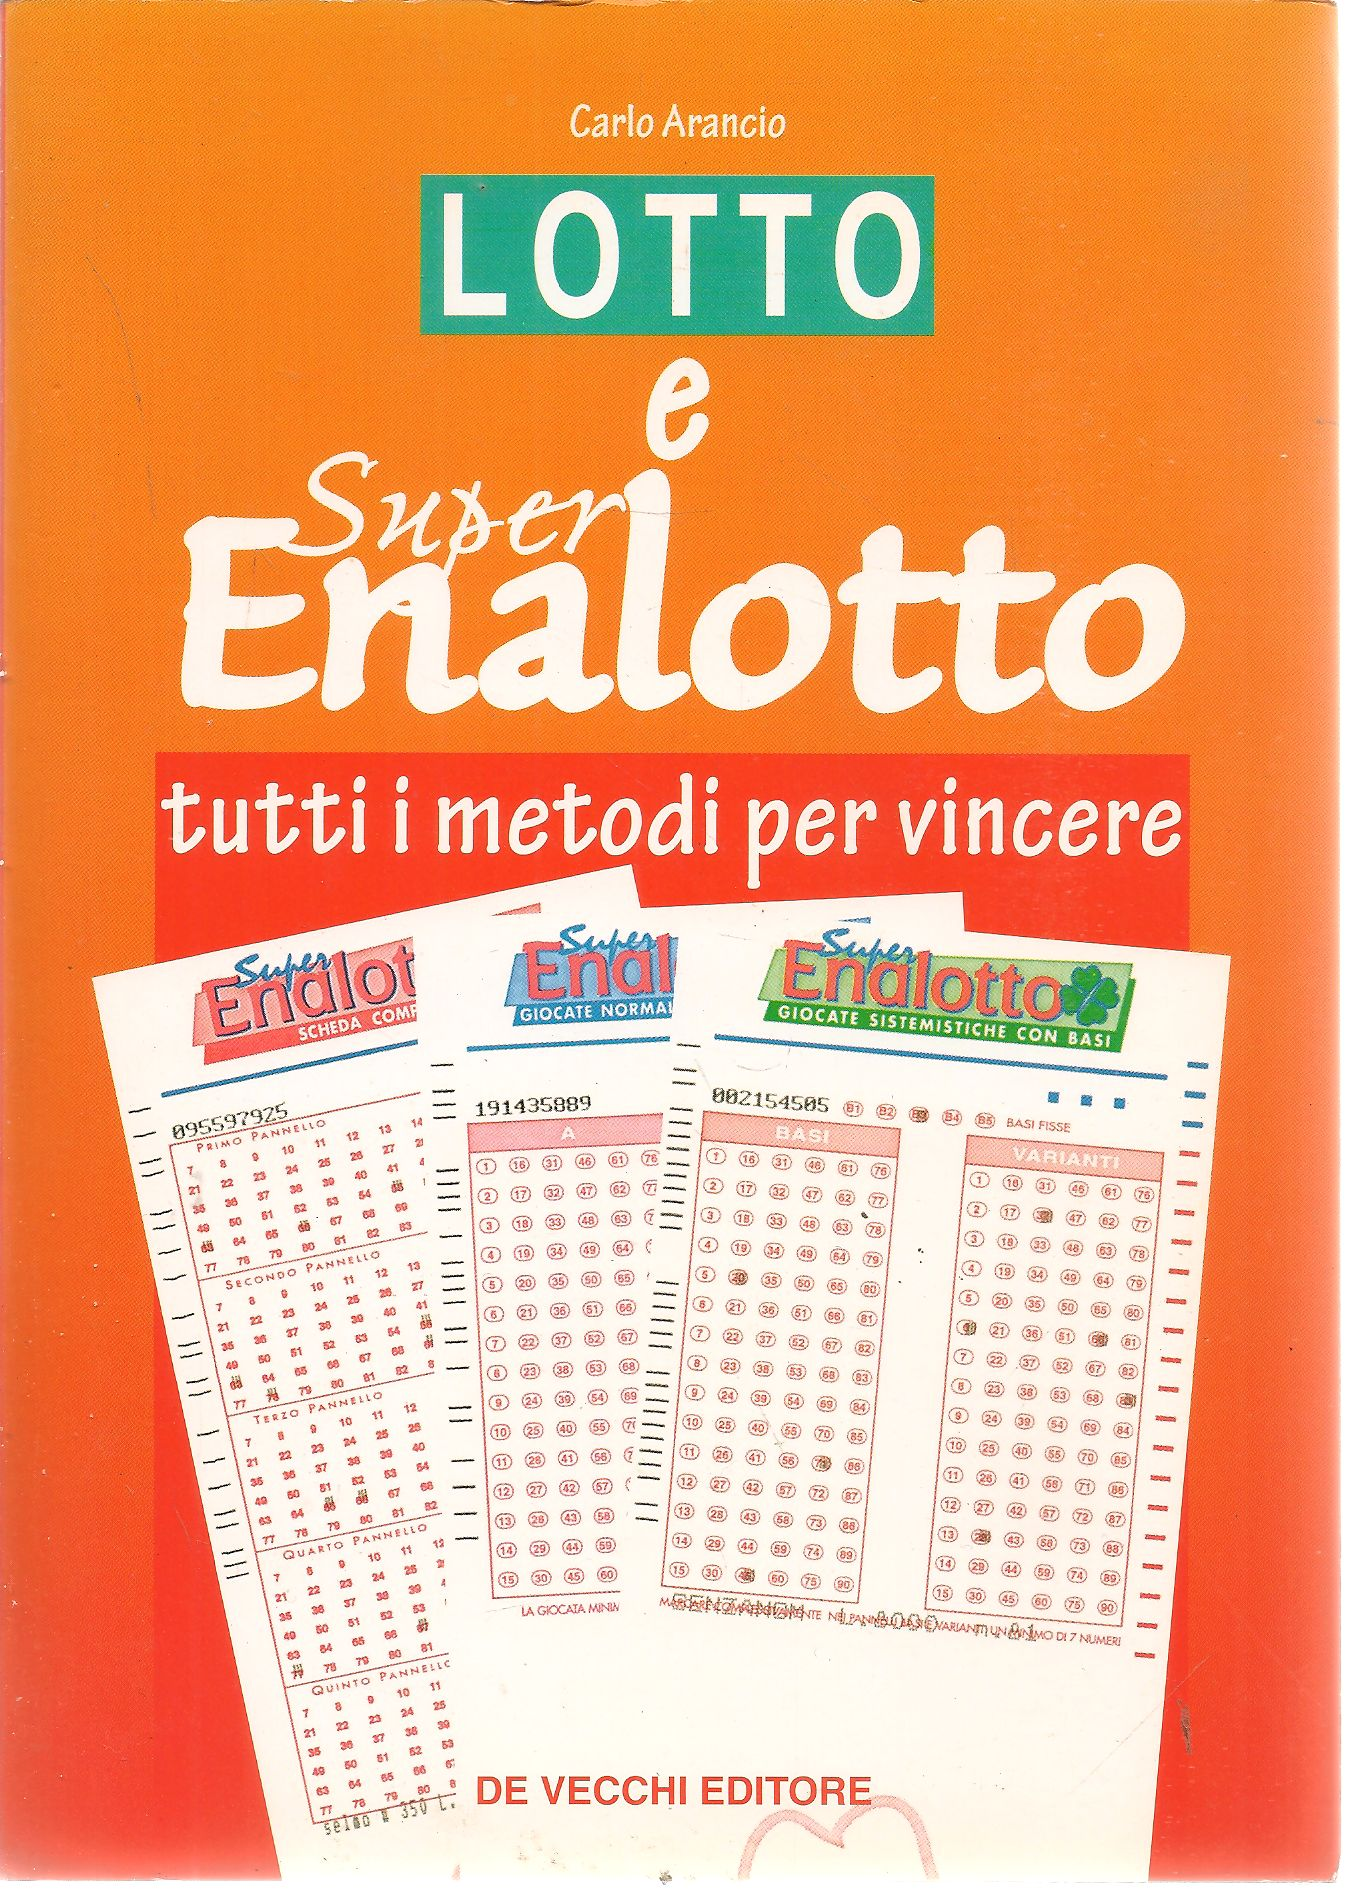 LOTTO E SUPER ENALOTTO - CARLO ARANCIO